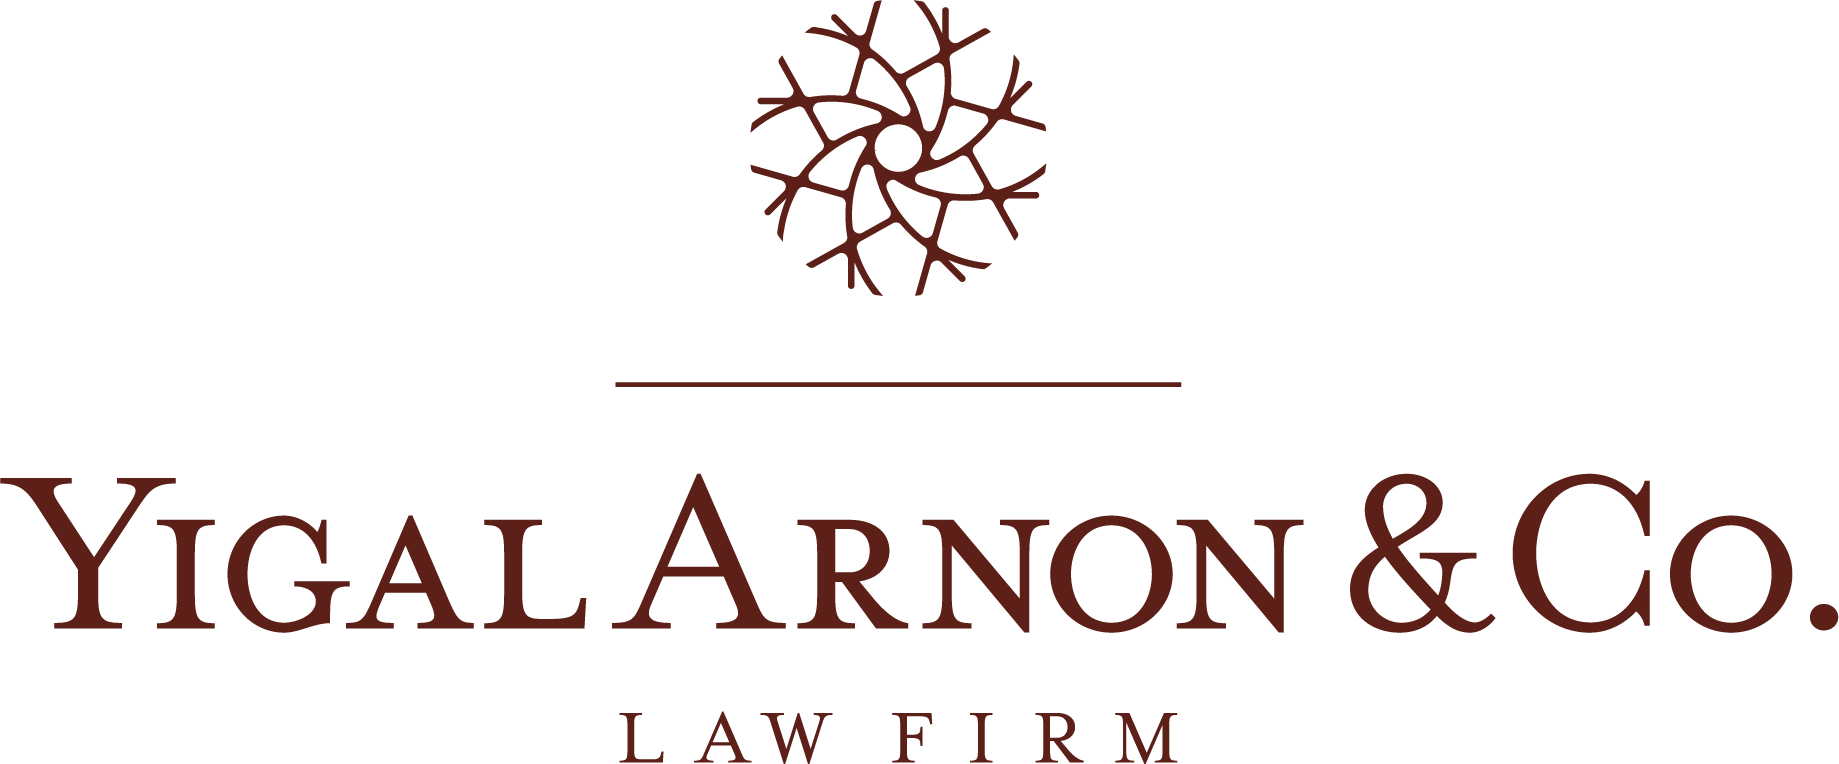 Yigal Arnon & Co. Law Firm